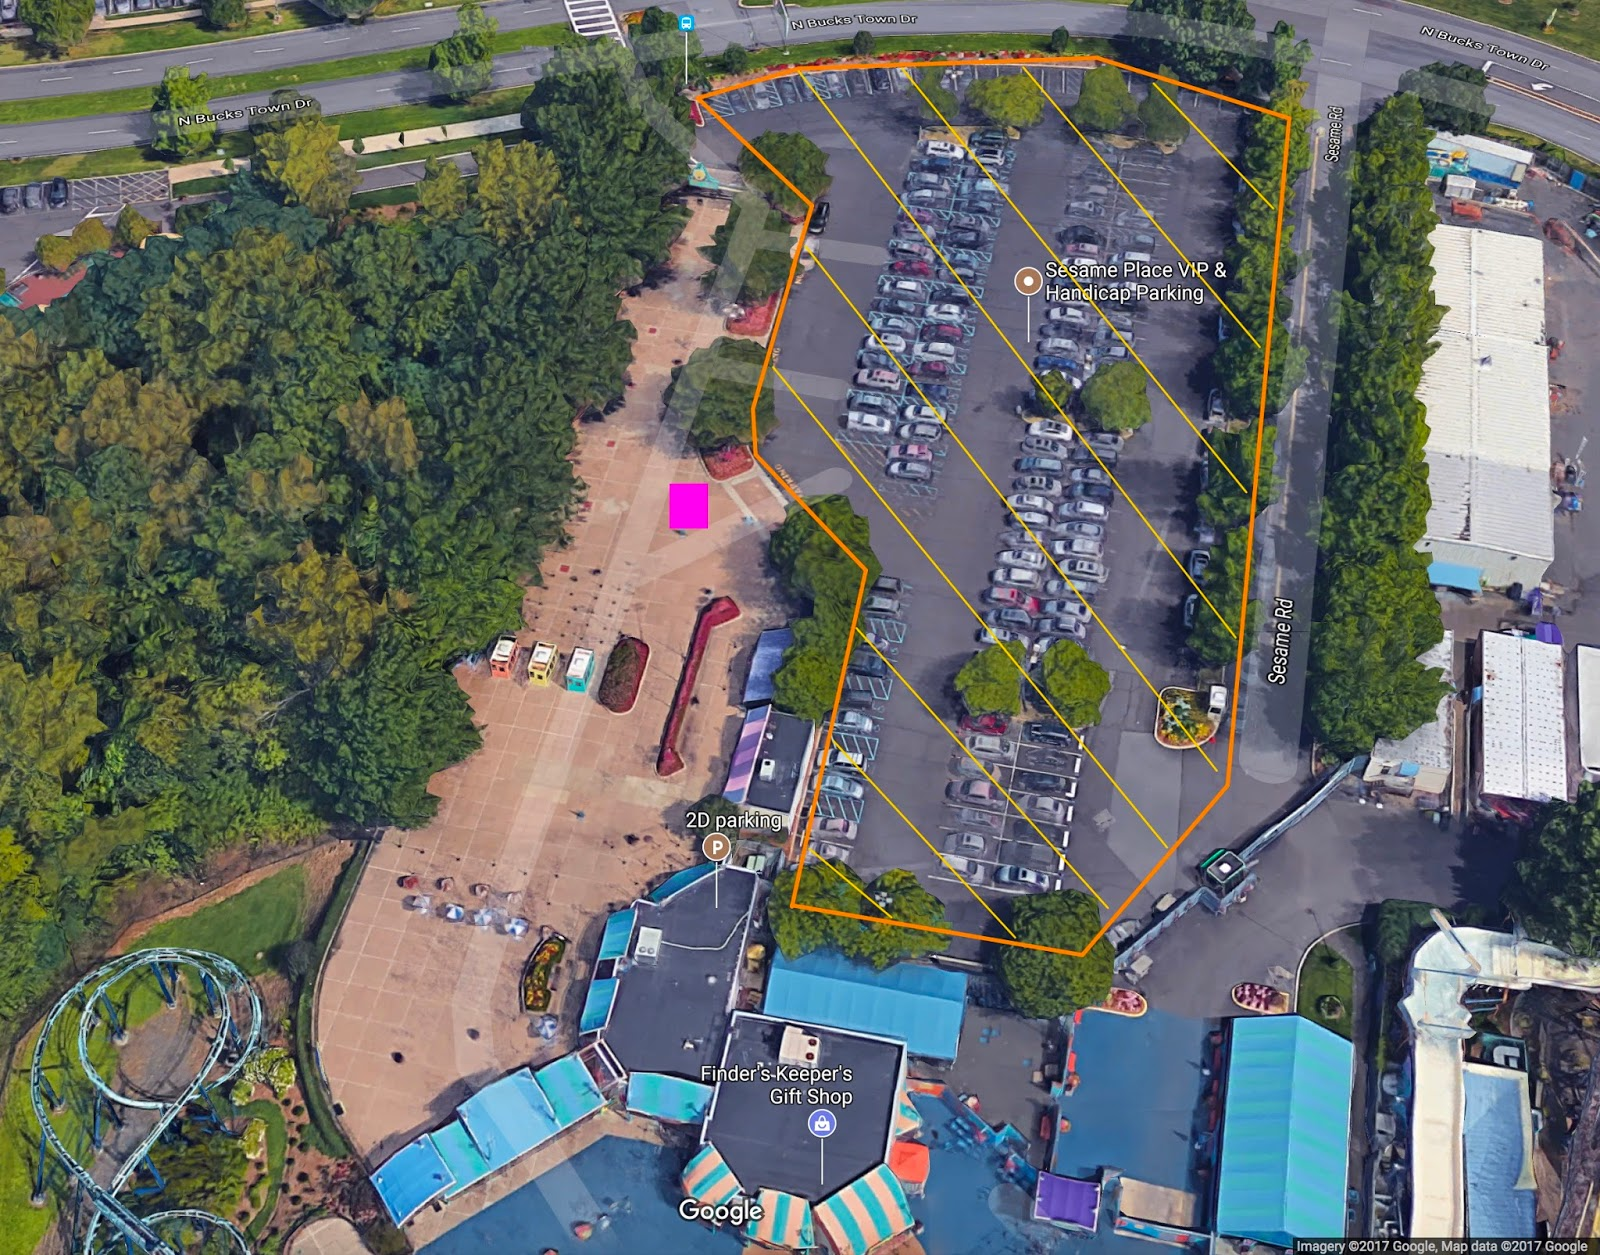 NewsPlusNotes: More on the Location of Sesame Place's 2018 ... on michigan's adventure map, busch gardens map, legoland map, canobie lake park map, idlewild and soak zone map, six flags map, hersheypark map, kings island map, disneyland map, knoebels map, knott's berry farm map, carowinds map, king of prussia mall map, adventure island map, aquatica map, discovery cove map, kings dominion map, dorney park map, cedar point map, peddler's village map,